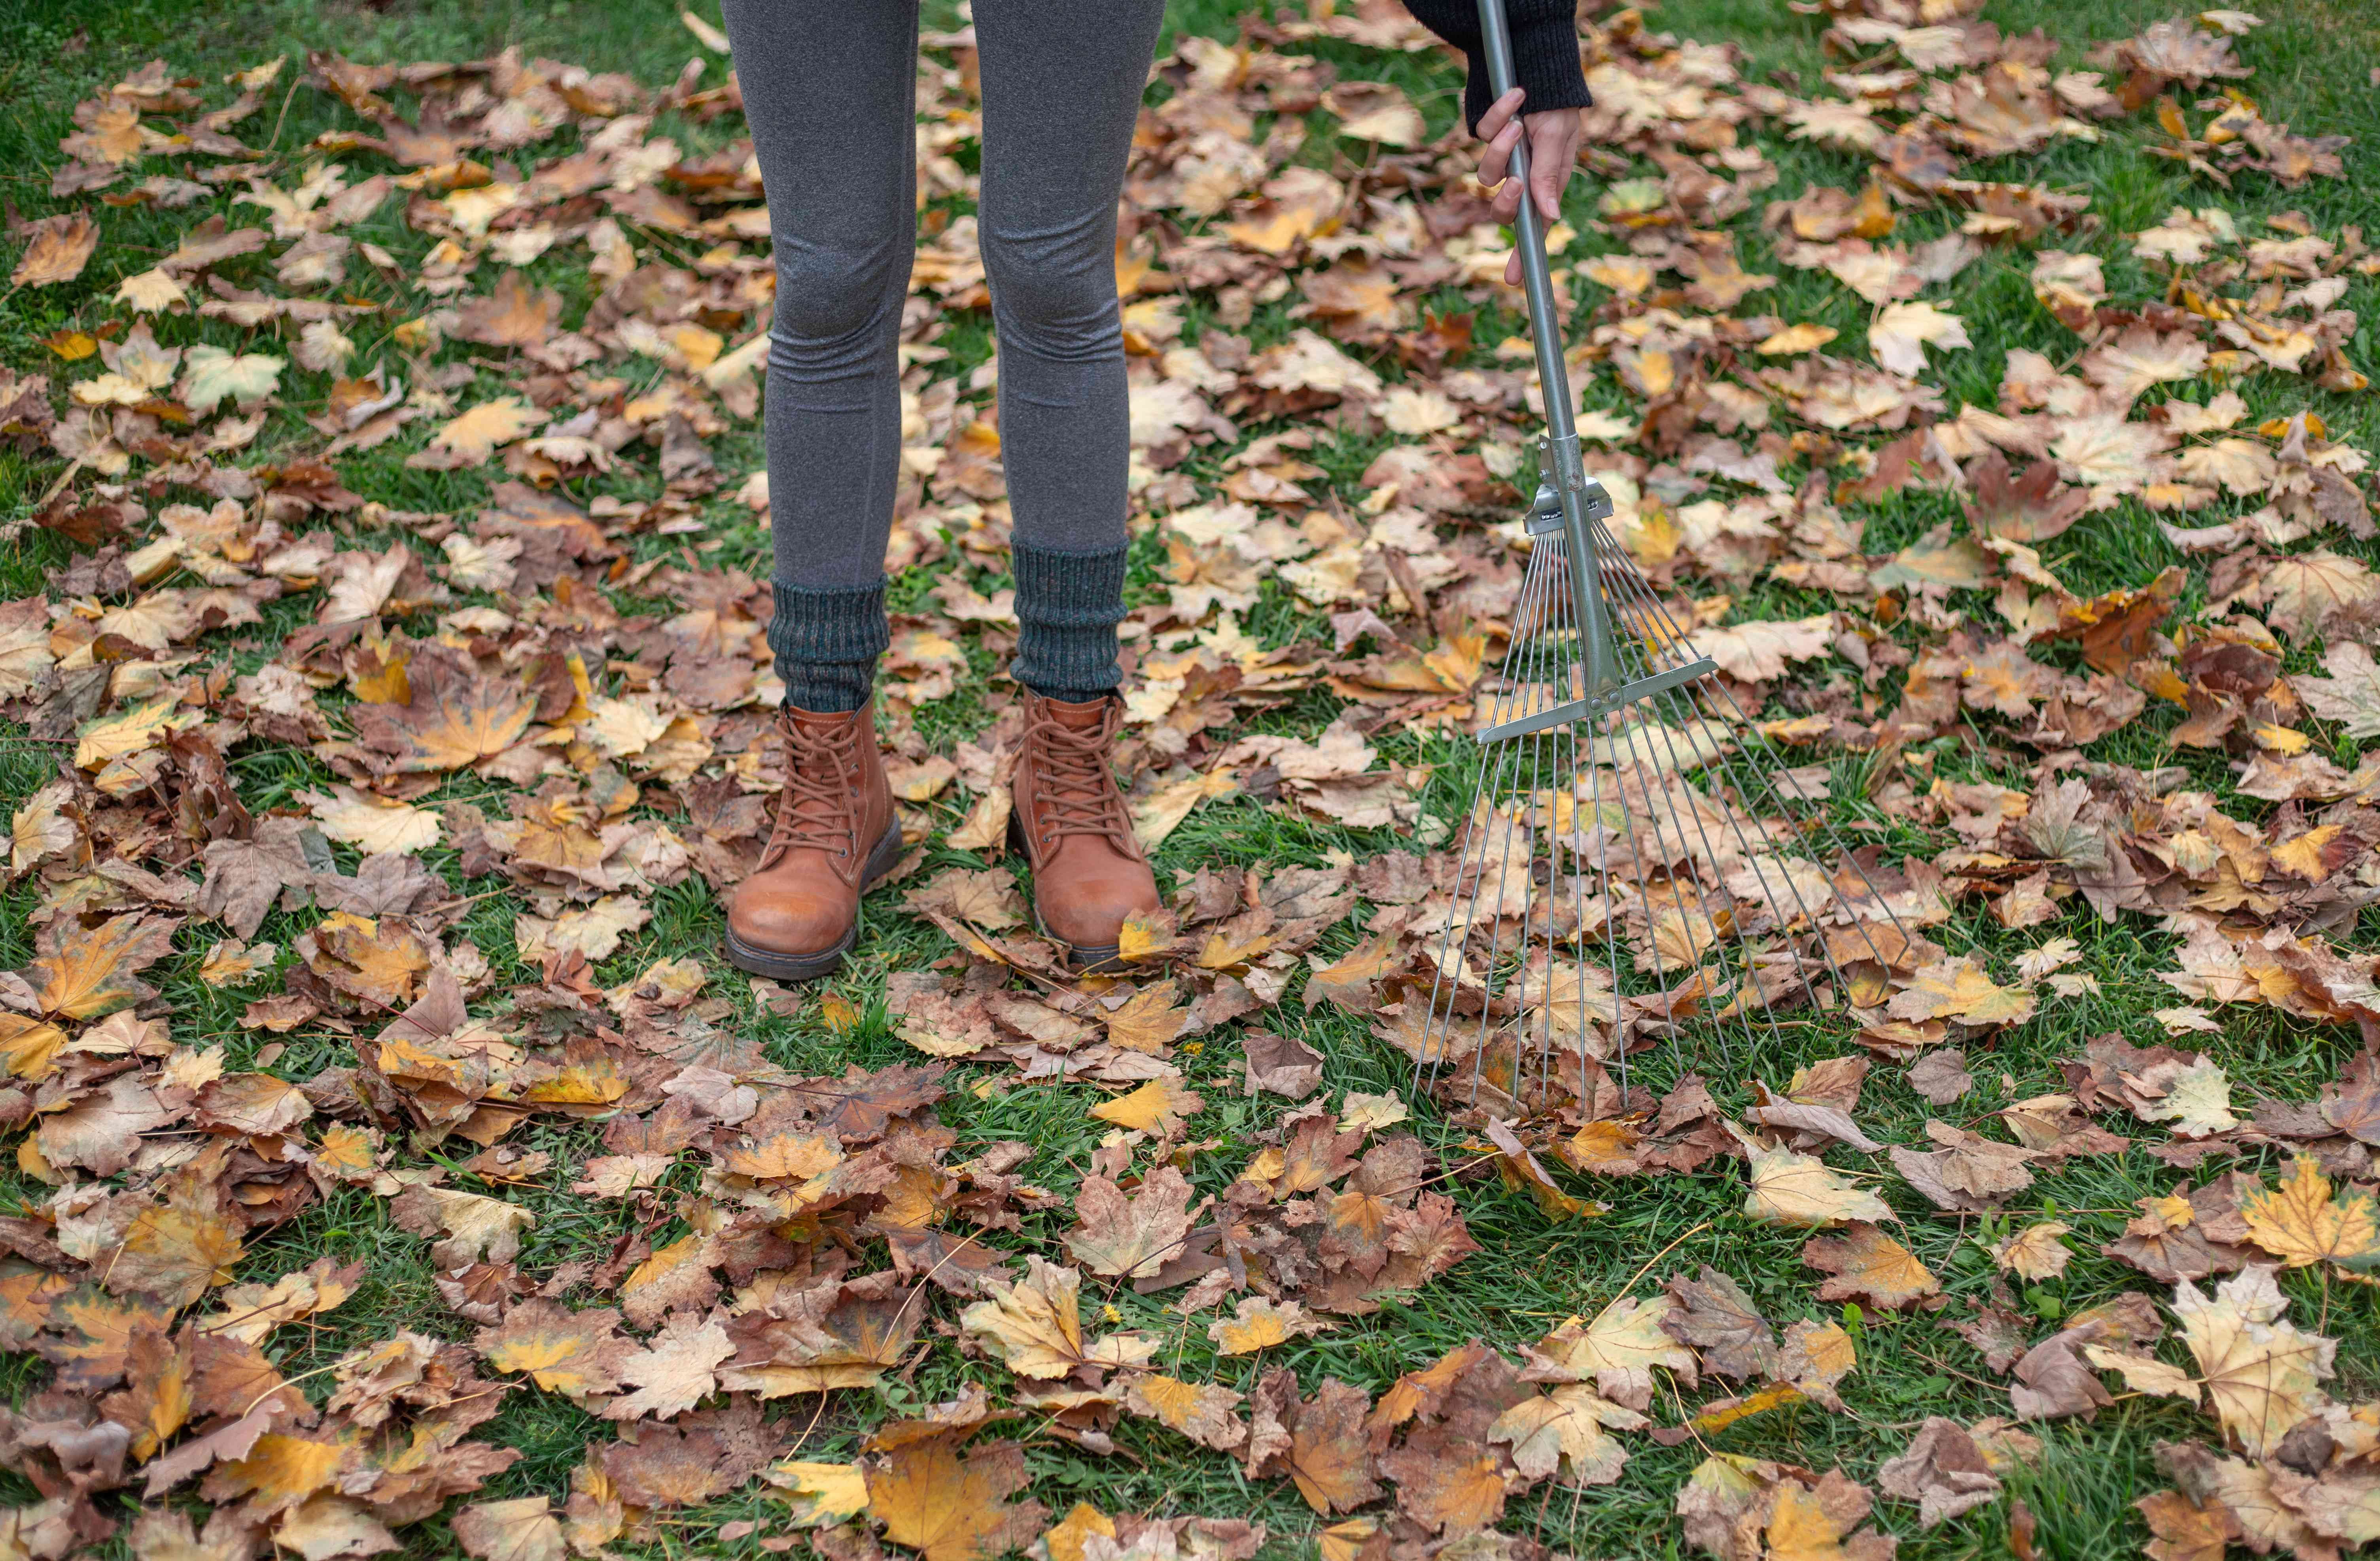 person stands on grassy lawn with leaves and rake